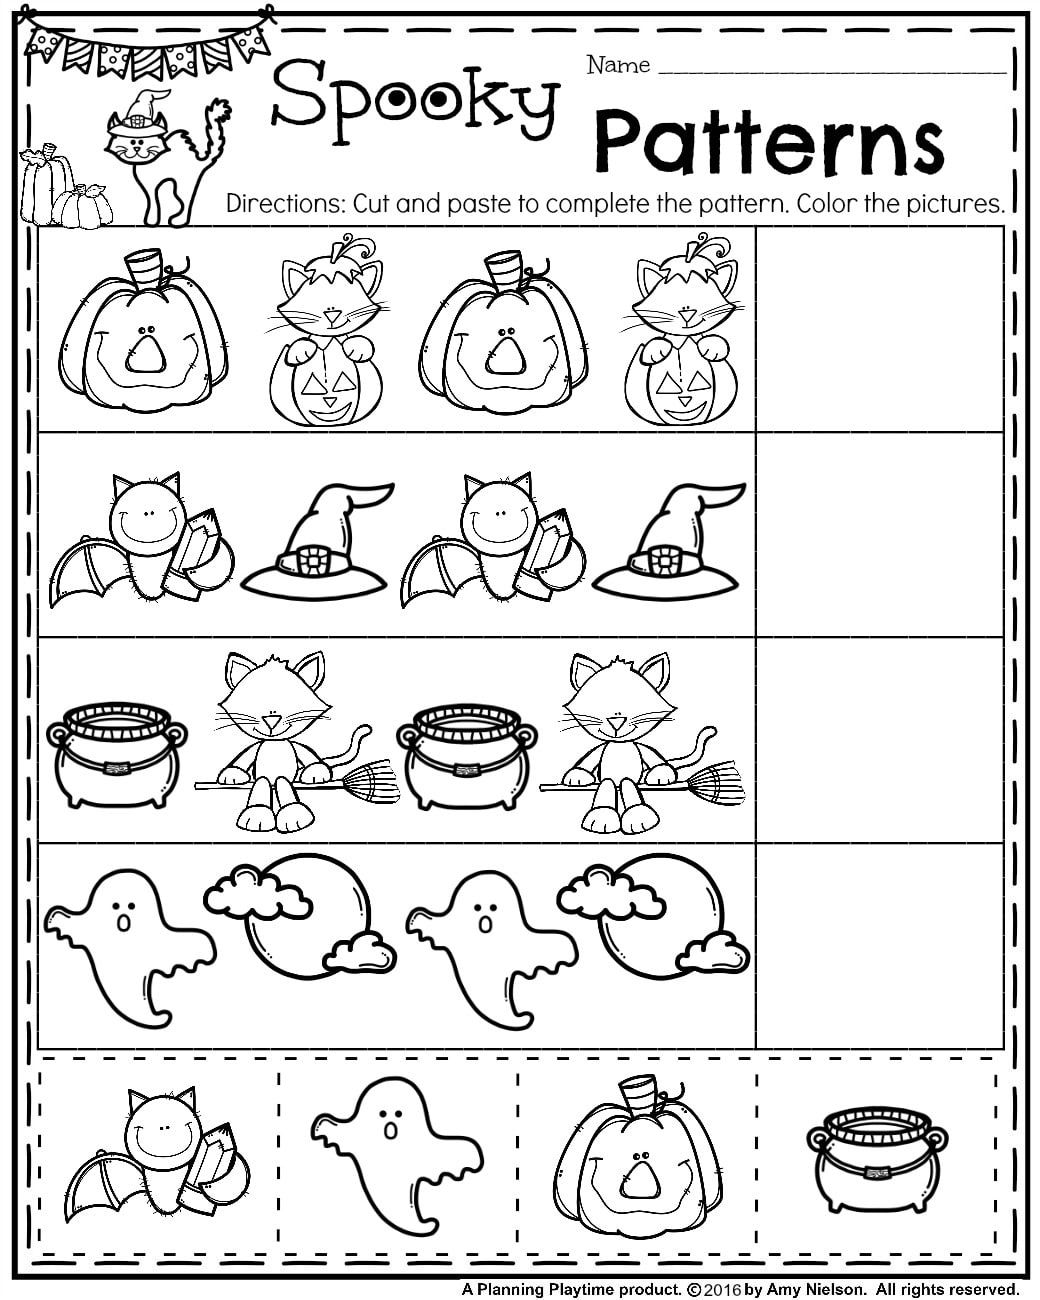 October Preschool Worksheets | Worksheets, Activities and School